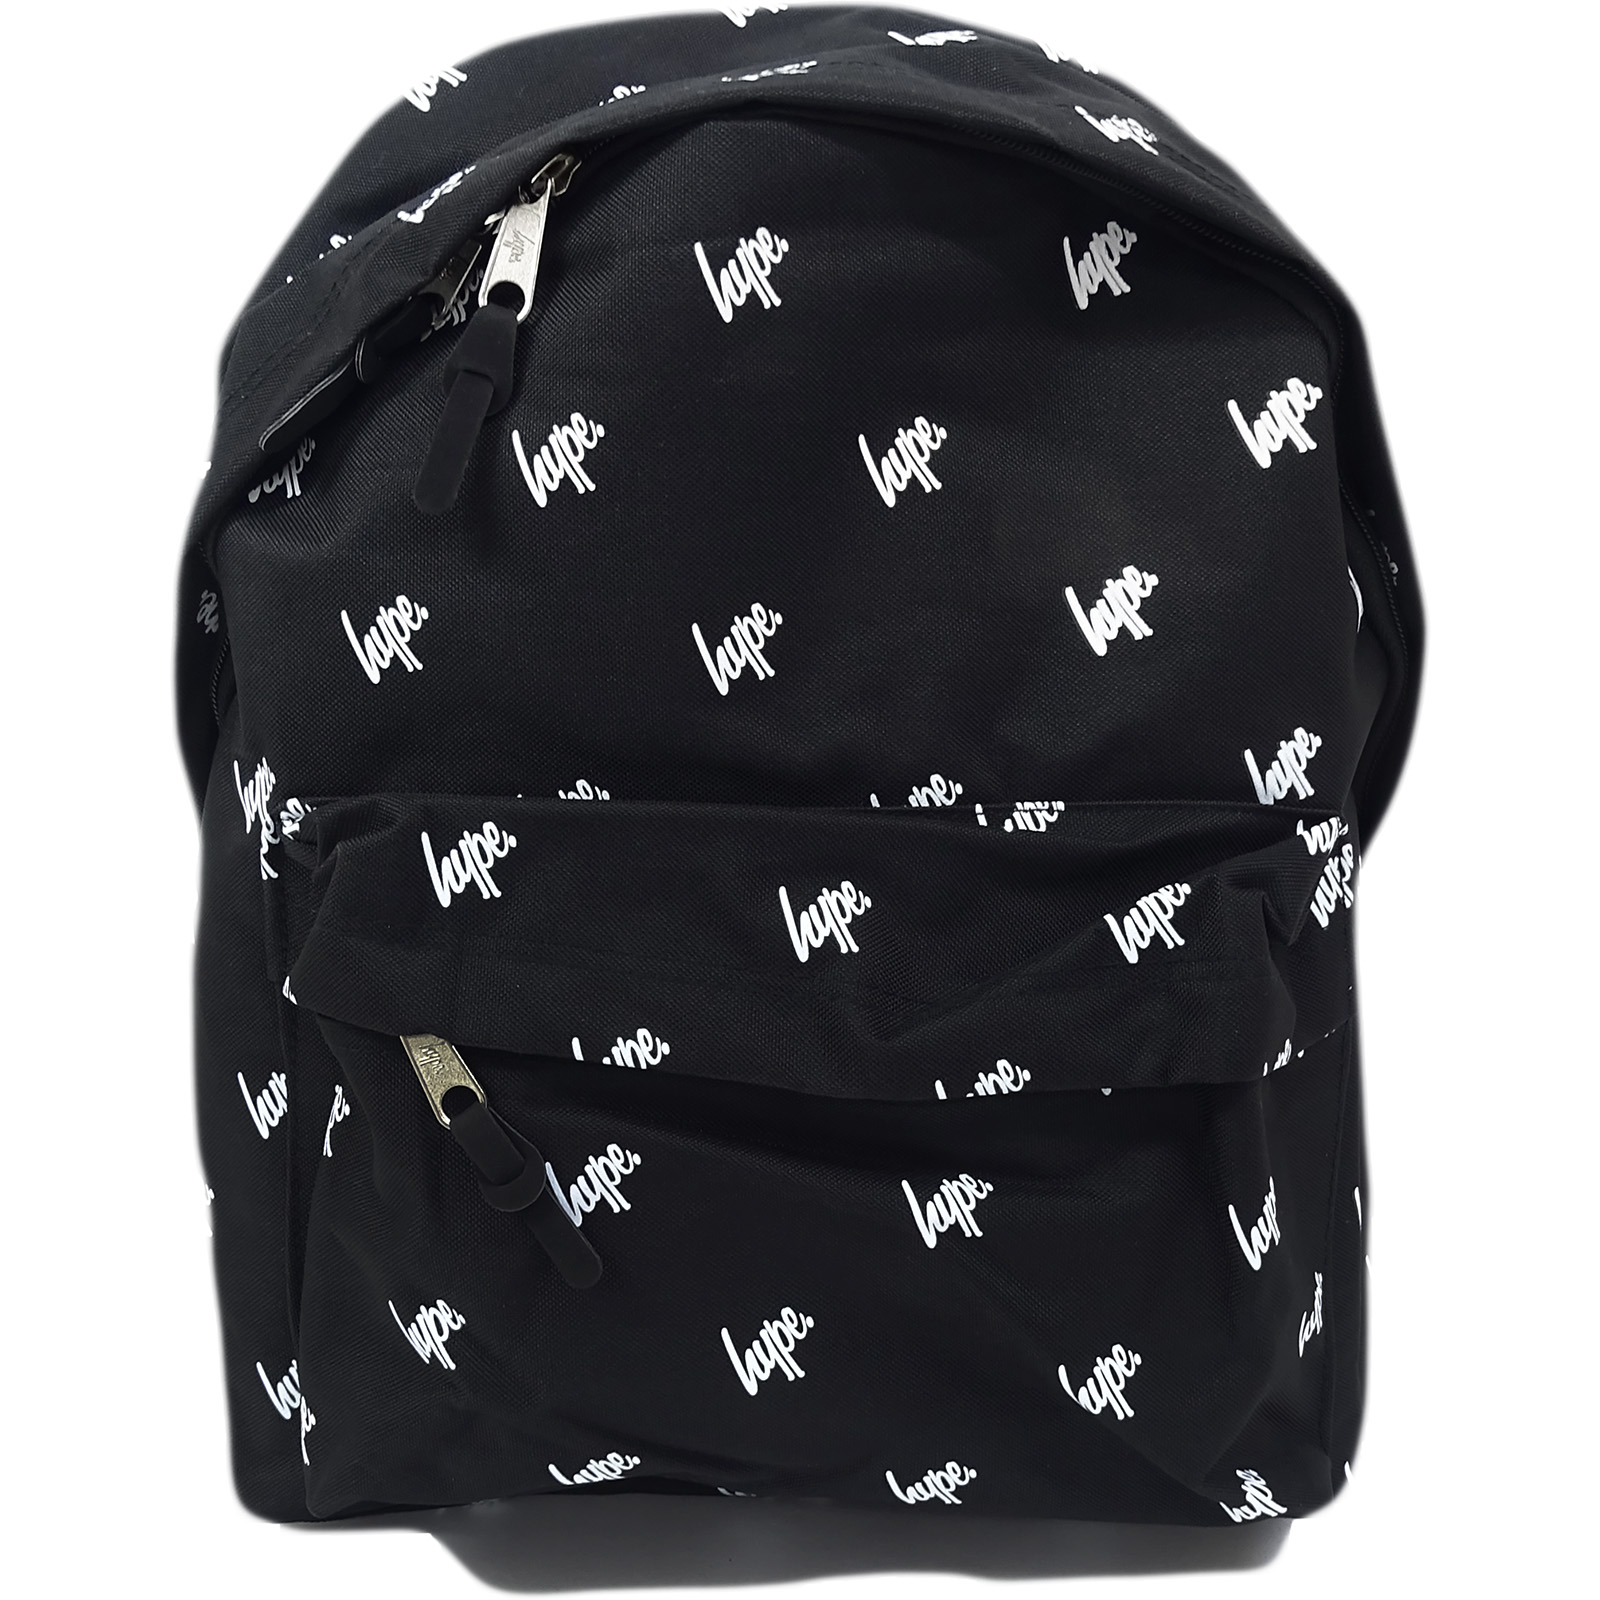 Hype Black All Over Hype Logo Backpack Bag Script Repeat